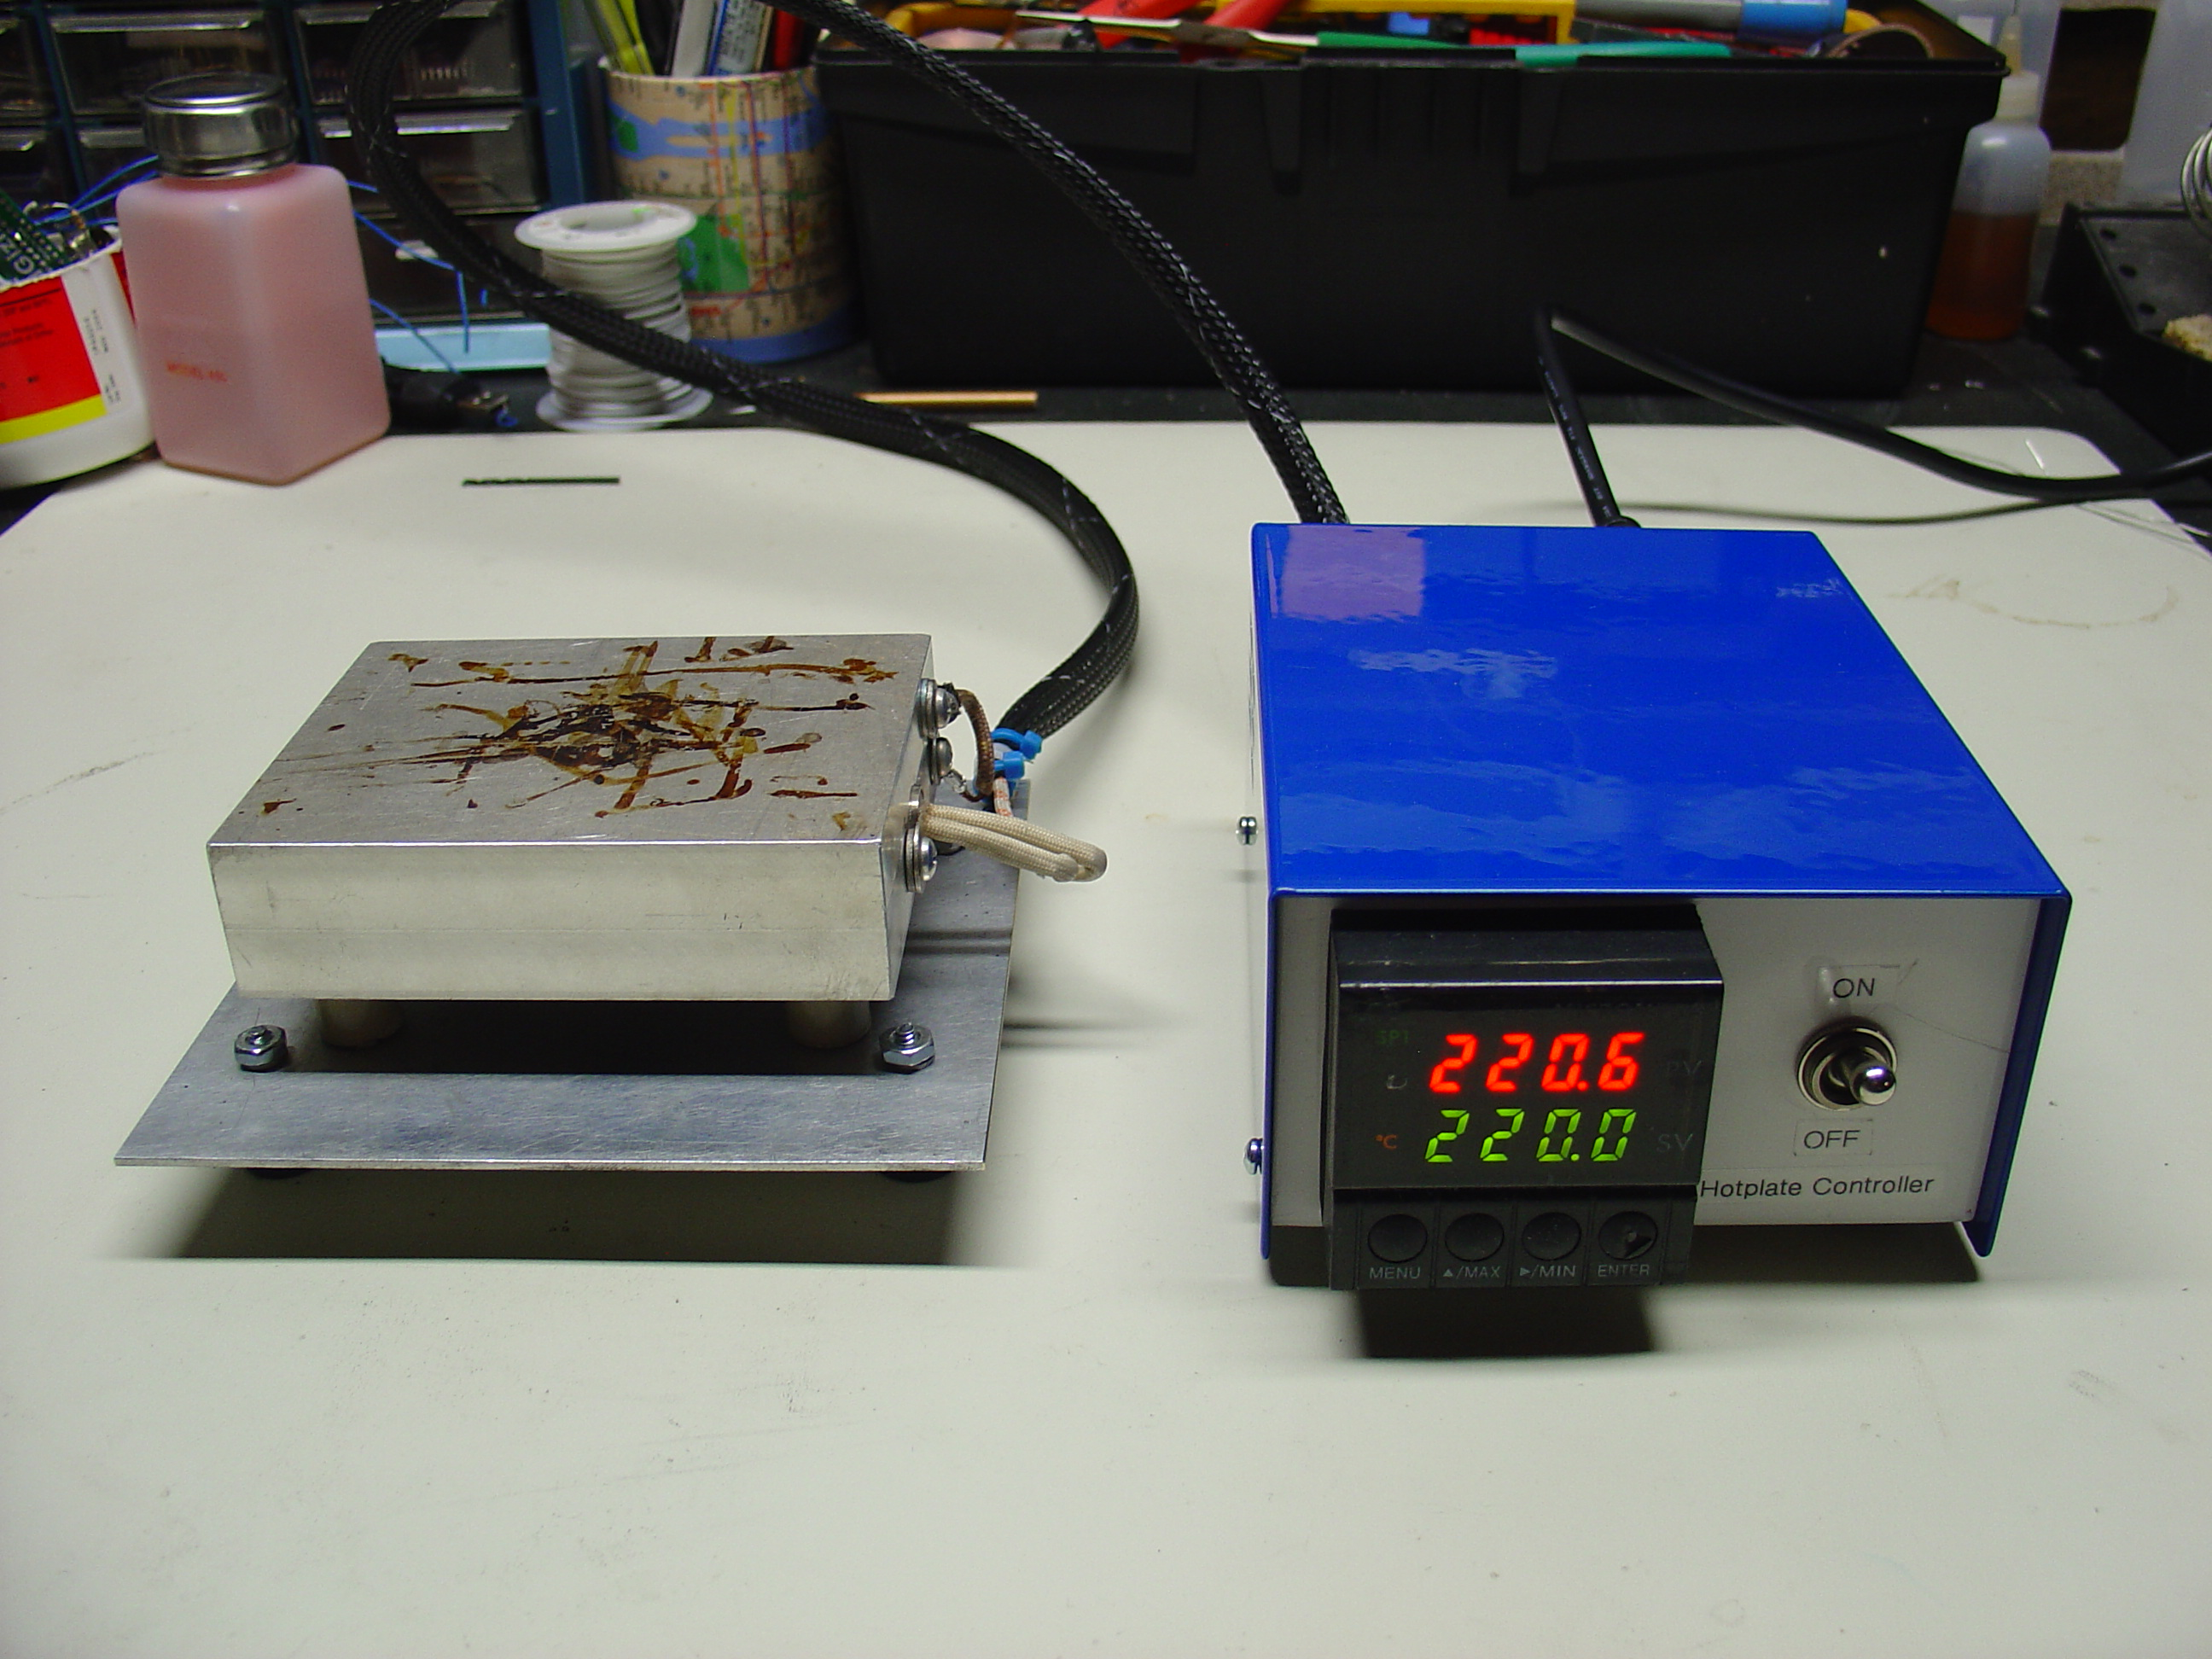 Diy Pid Controlled Soldering Hotplate Mightyohm Infrared Remote Control Tester Electronicslab